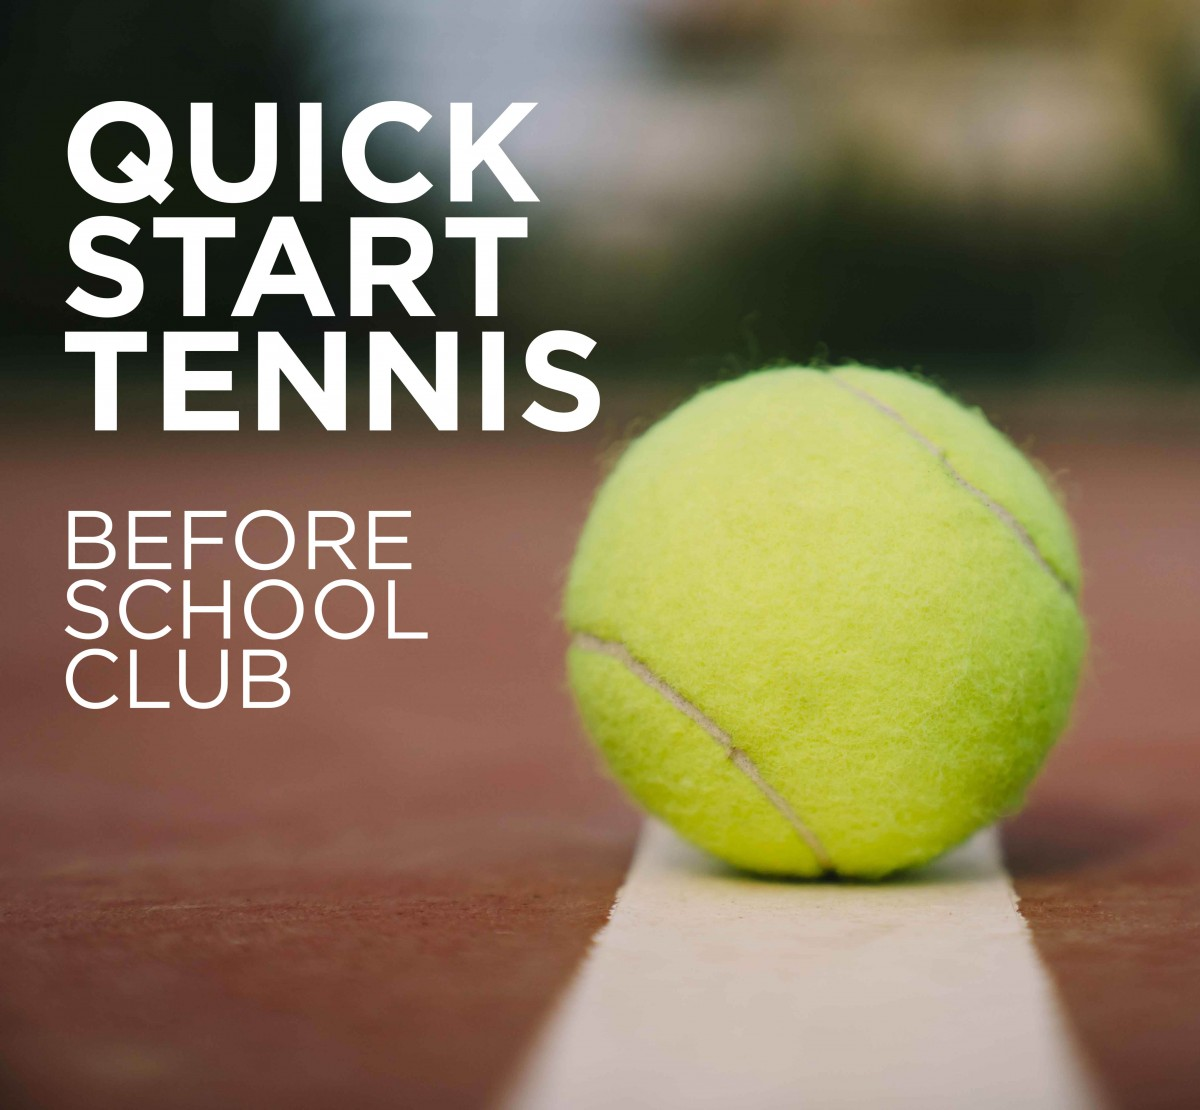 Thumbnail for Join the Quick Start Tennis Before School Club at Gardnertown!